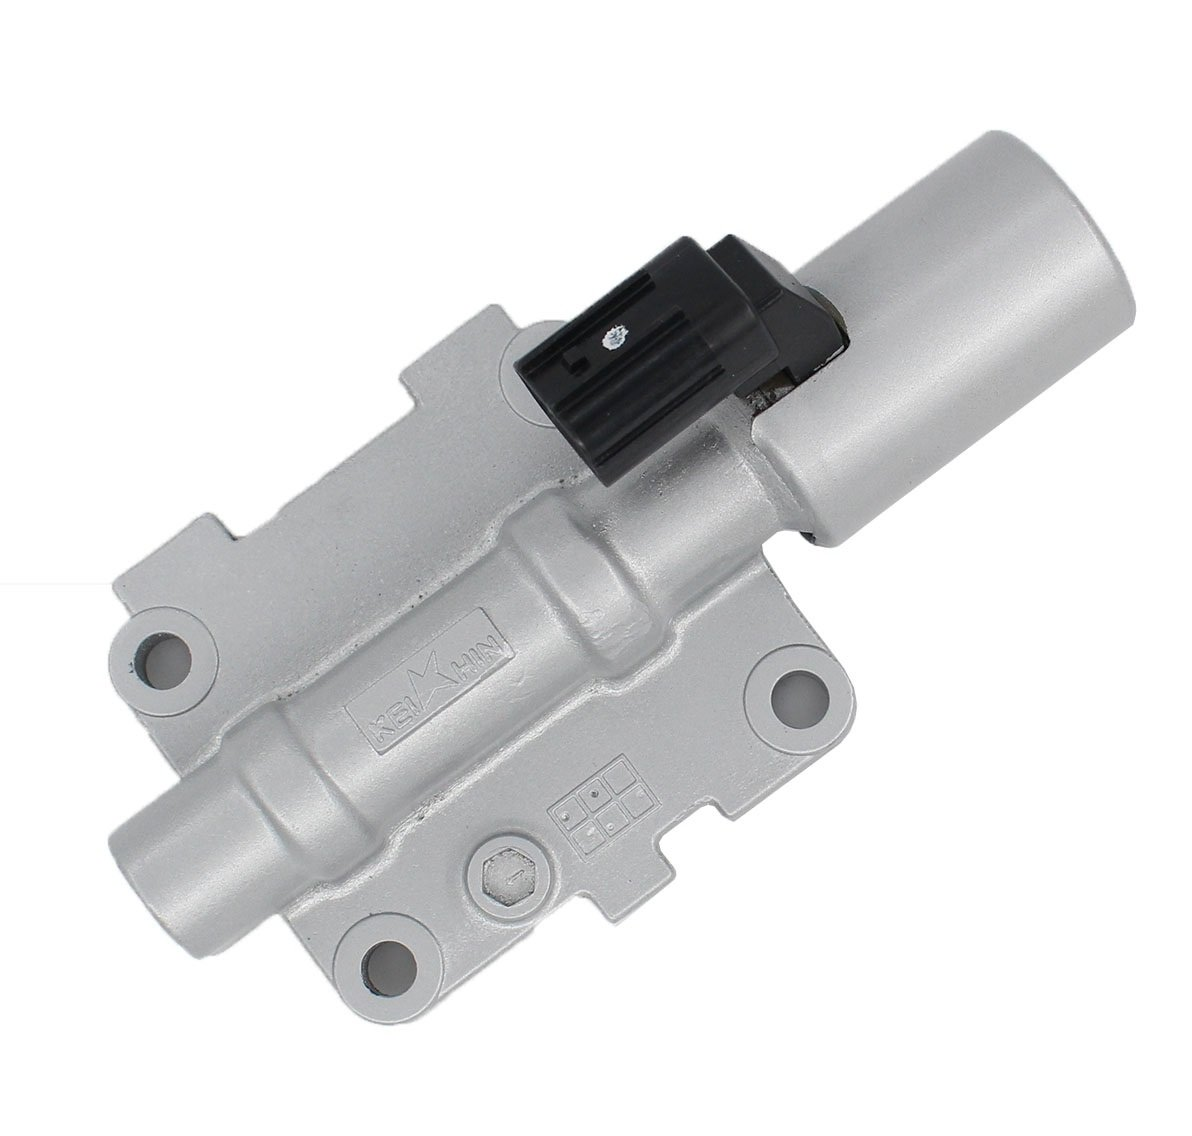 Automatic Transmission Trans Single Linear Control Shift Lock up Solenoid For Honda Replace # 28250-P7W-003